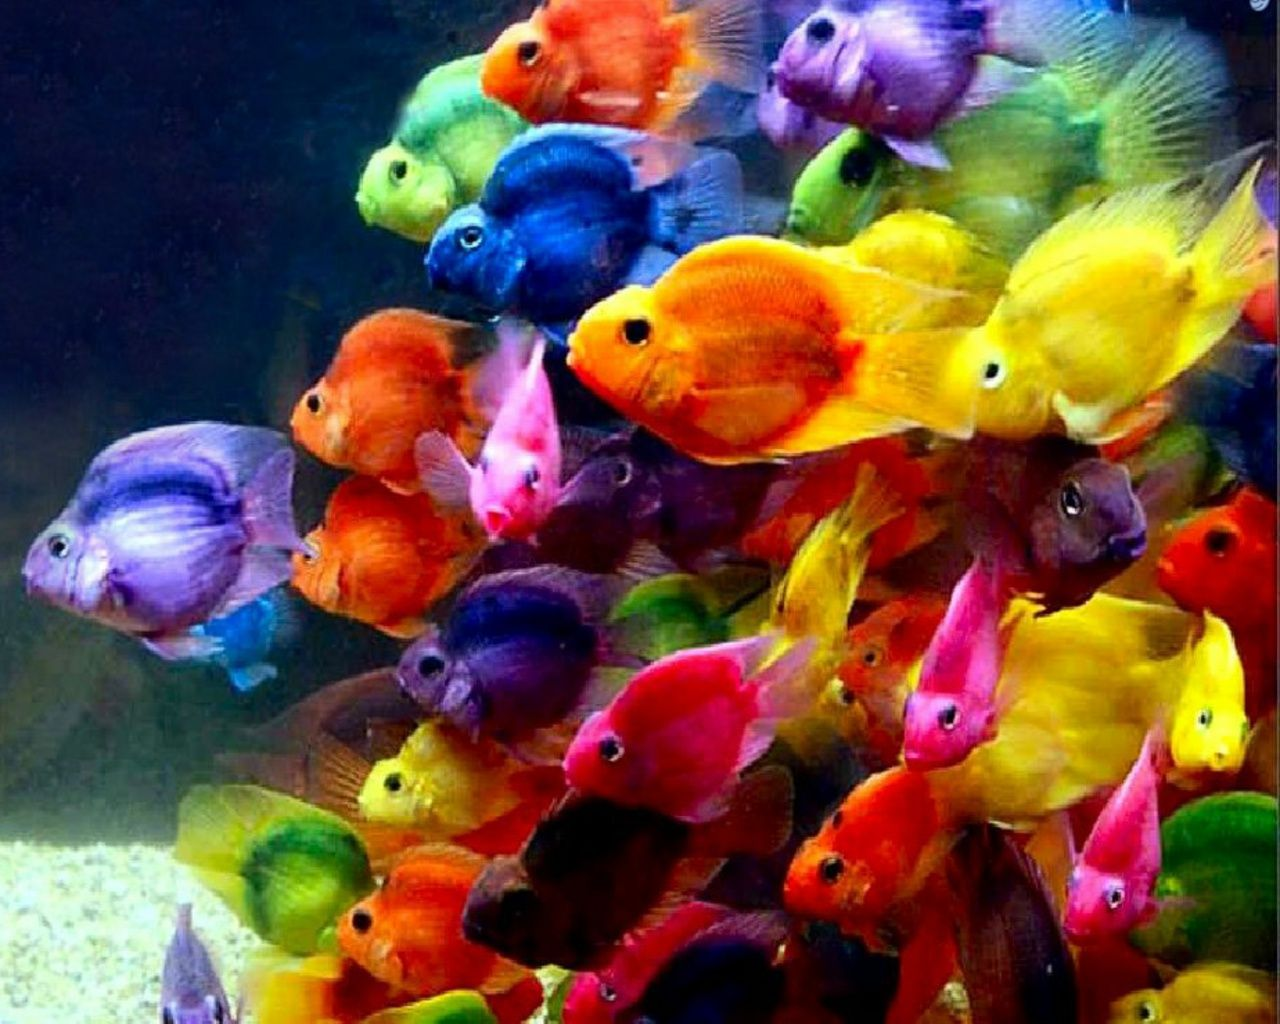 Parrot Wallpapers Download 778 Wallpapers Page 1 Forwallpaper Com Colorful Fish Parrot Fish Rainbow Fish